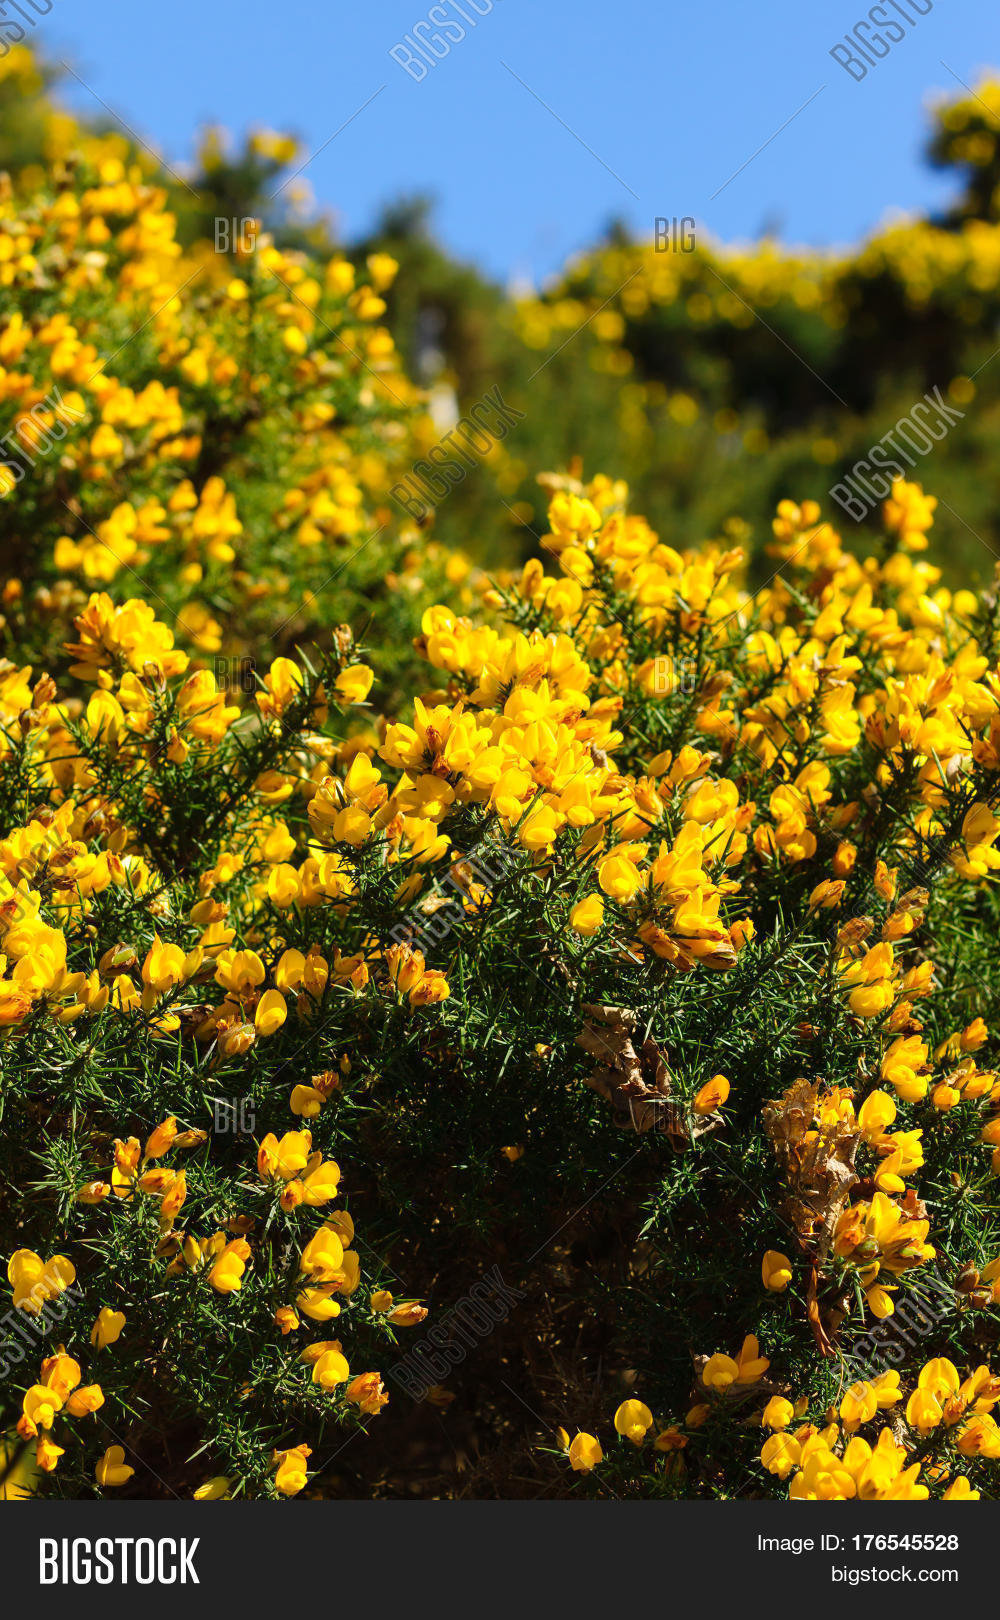 Common gorse ulex image photo free trial bigstock common gorse ulex europaeus also known as furze or whin a thorny evergreen shrub mightylinksfo